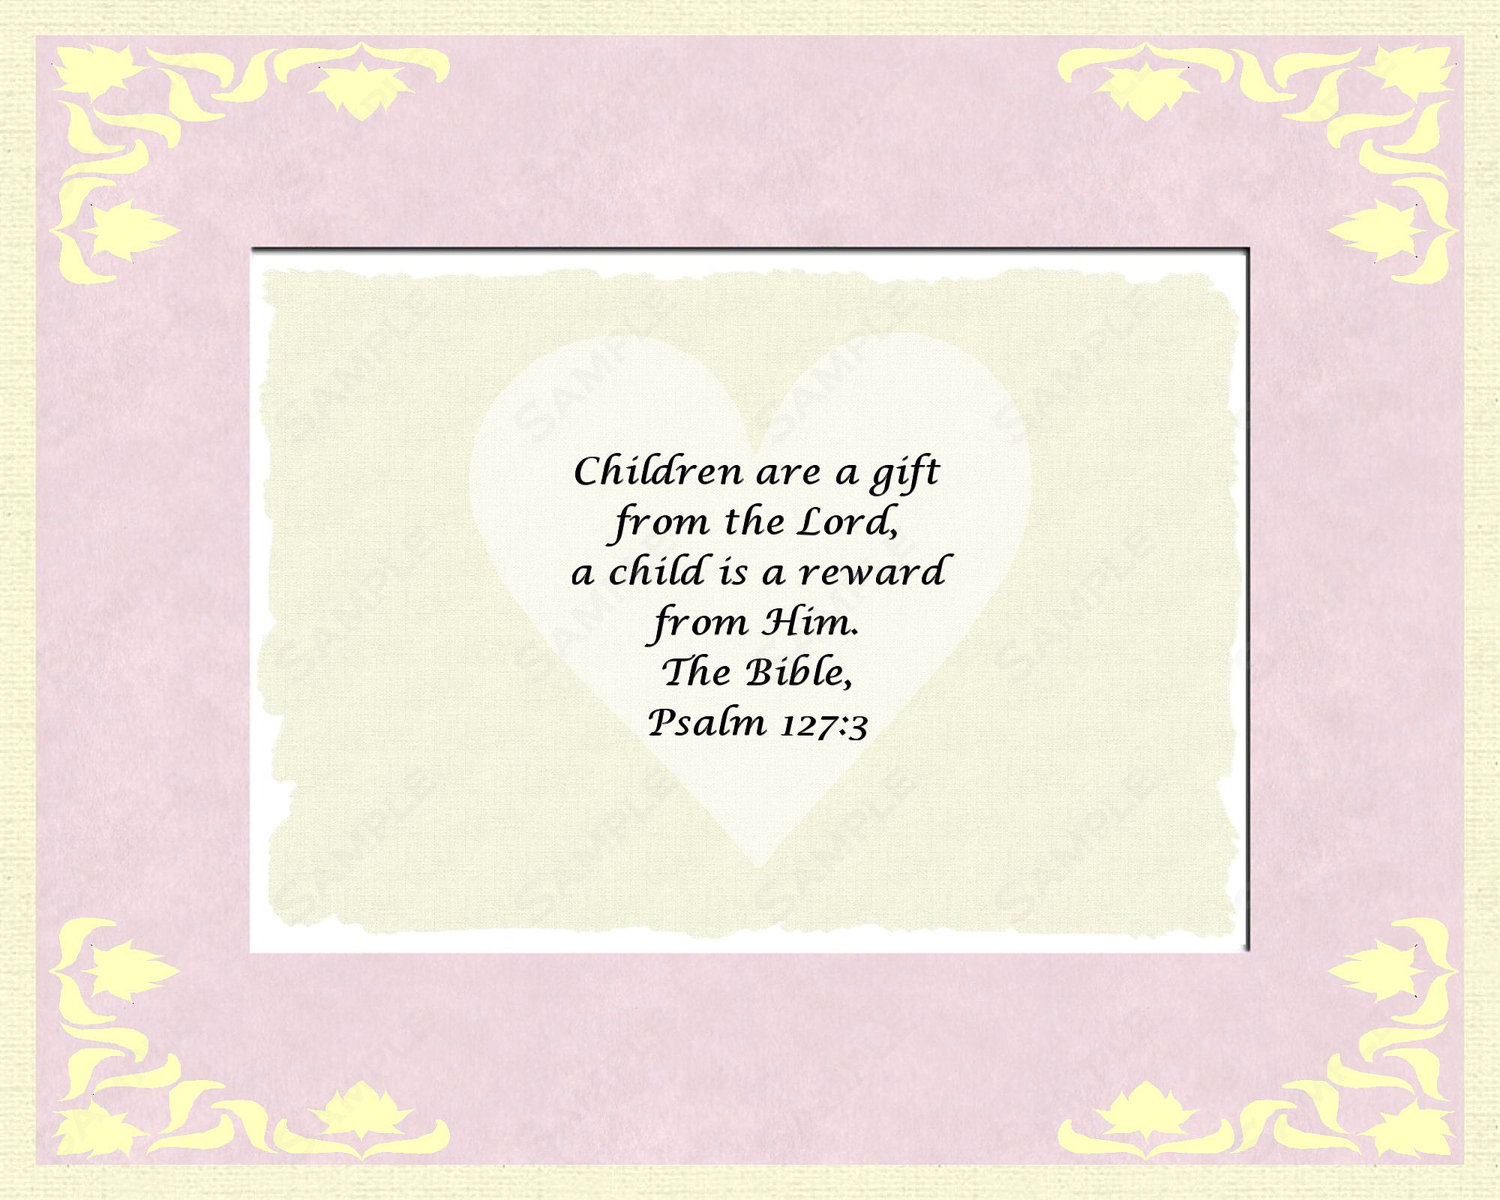 Baby Girl Coming Soon Quotes Quotesgram: Baby Girl Baptism Quotes. QuotesGram